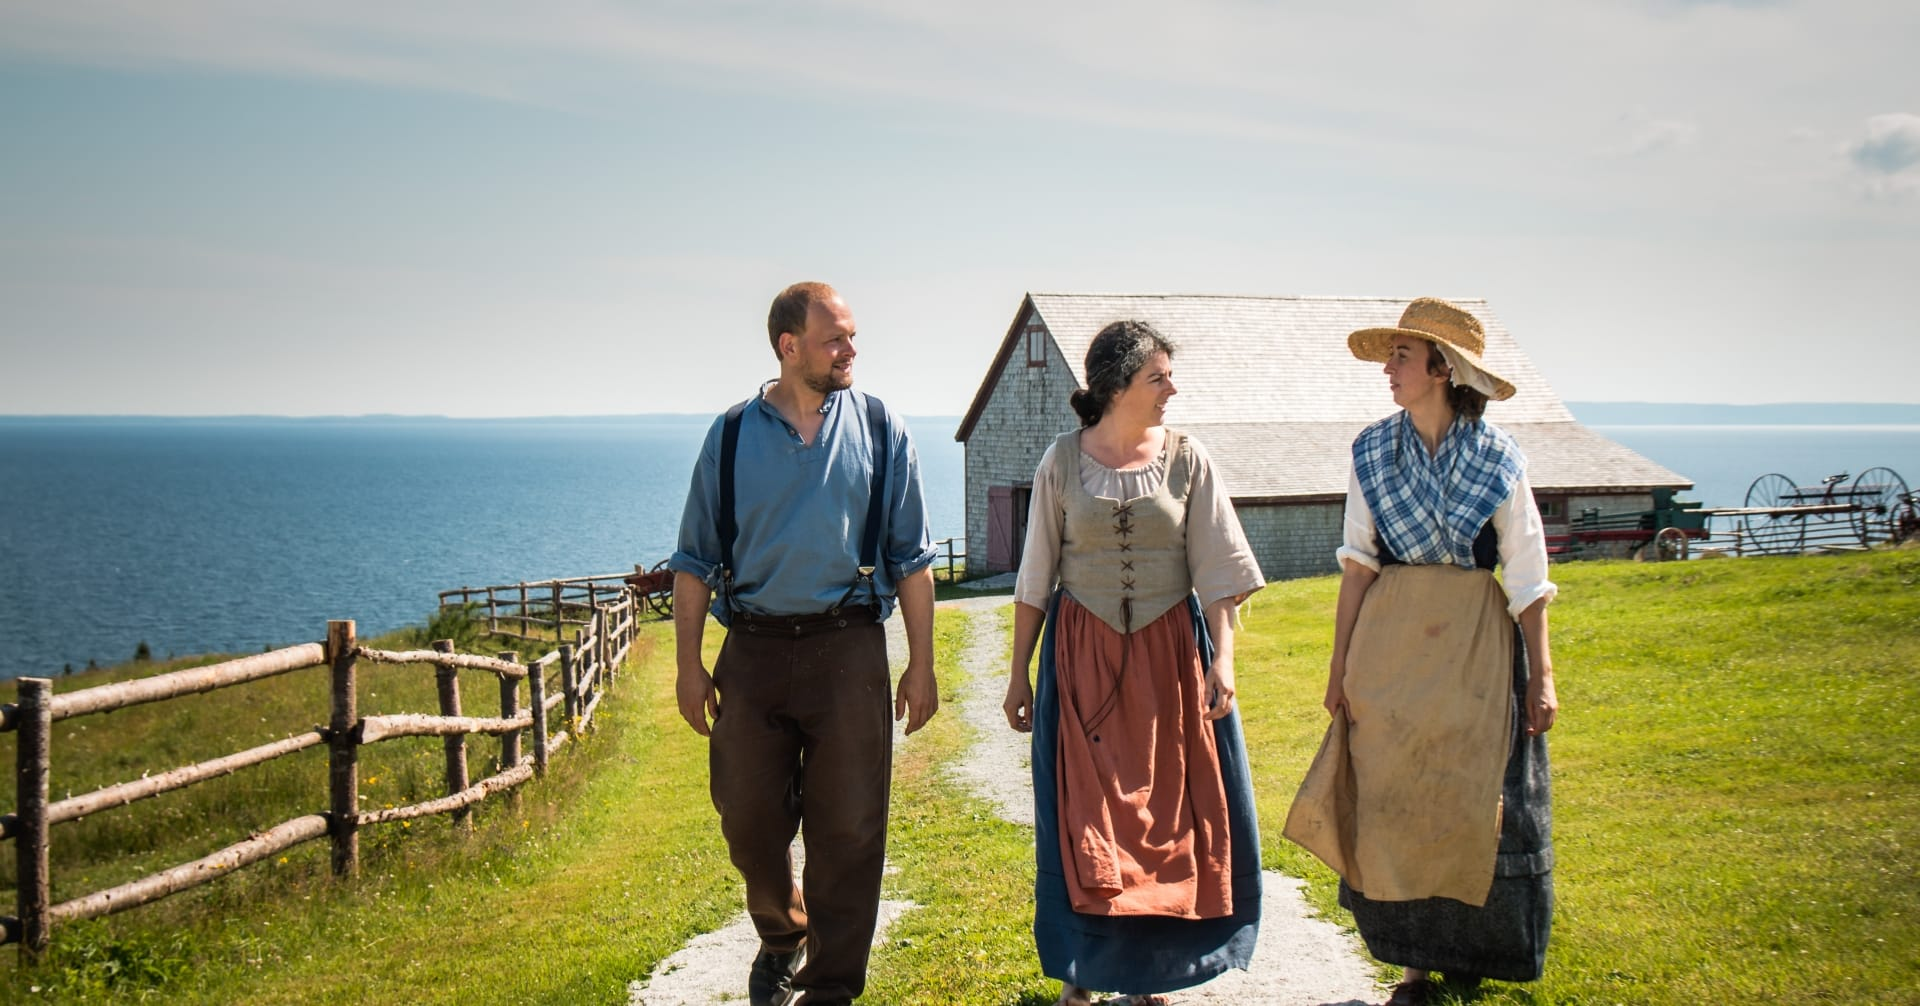 Three people in period clothing walk outside with the ocean in the background